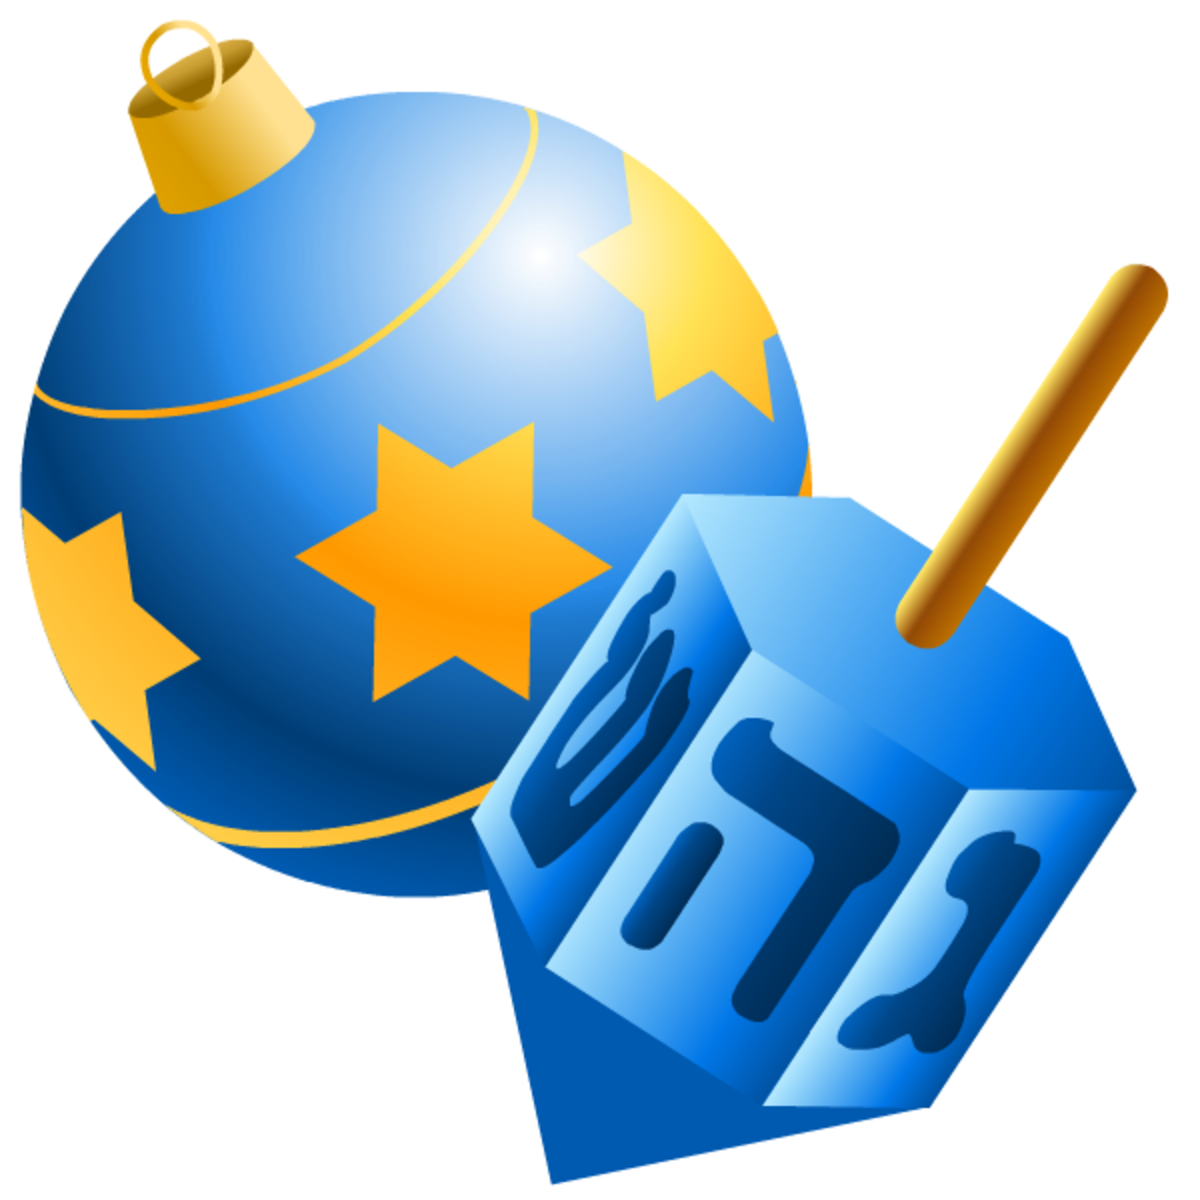 Hanukkah symbols: ornament and dreidel